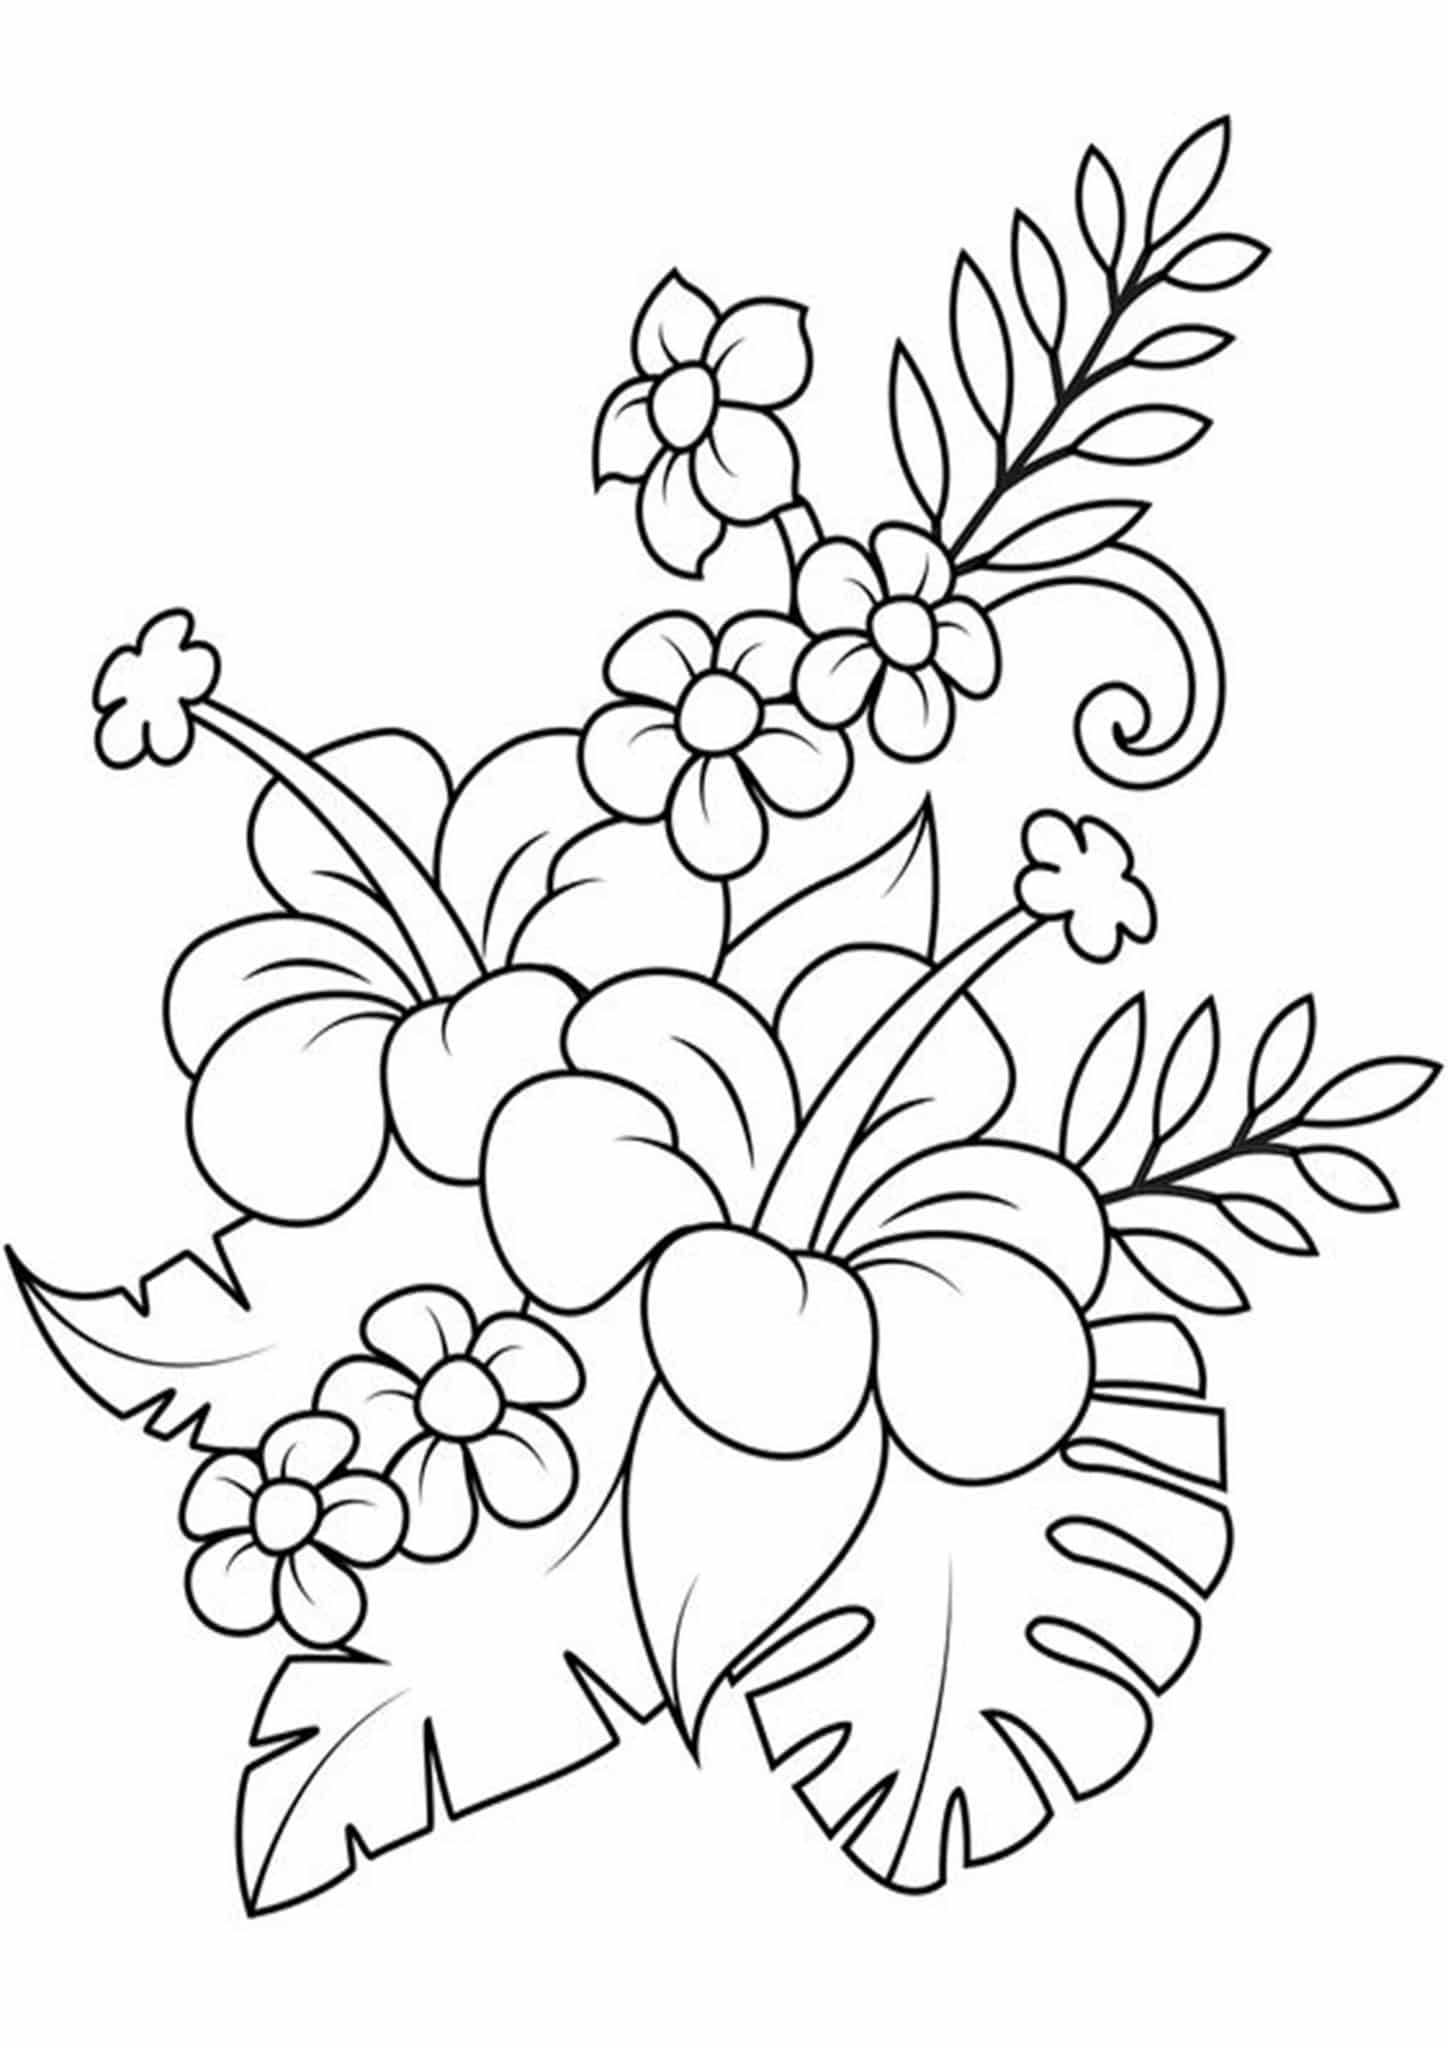 coloring pictures of a flower flowers printing pages creative children pictures of flower coloring a